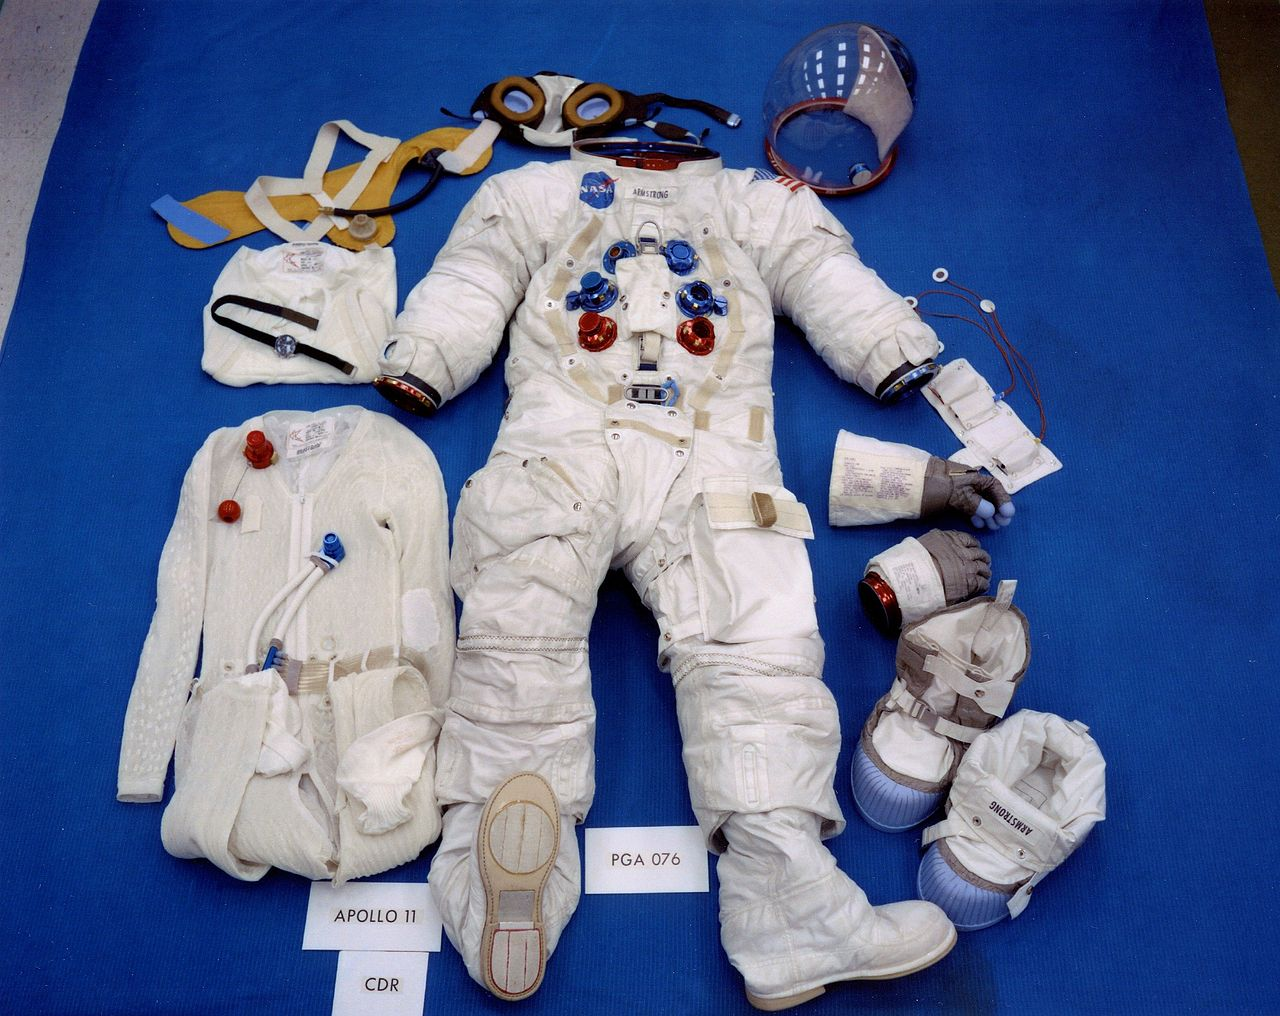 Apollo_11_space_suit